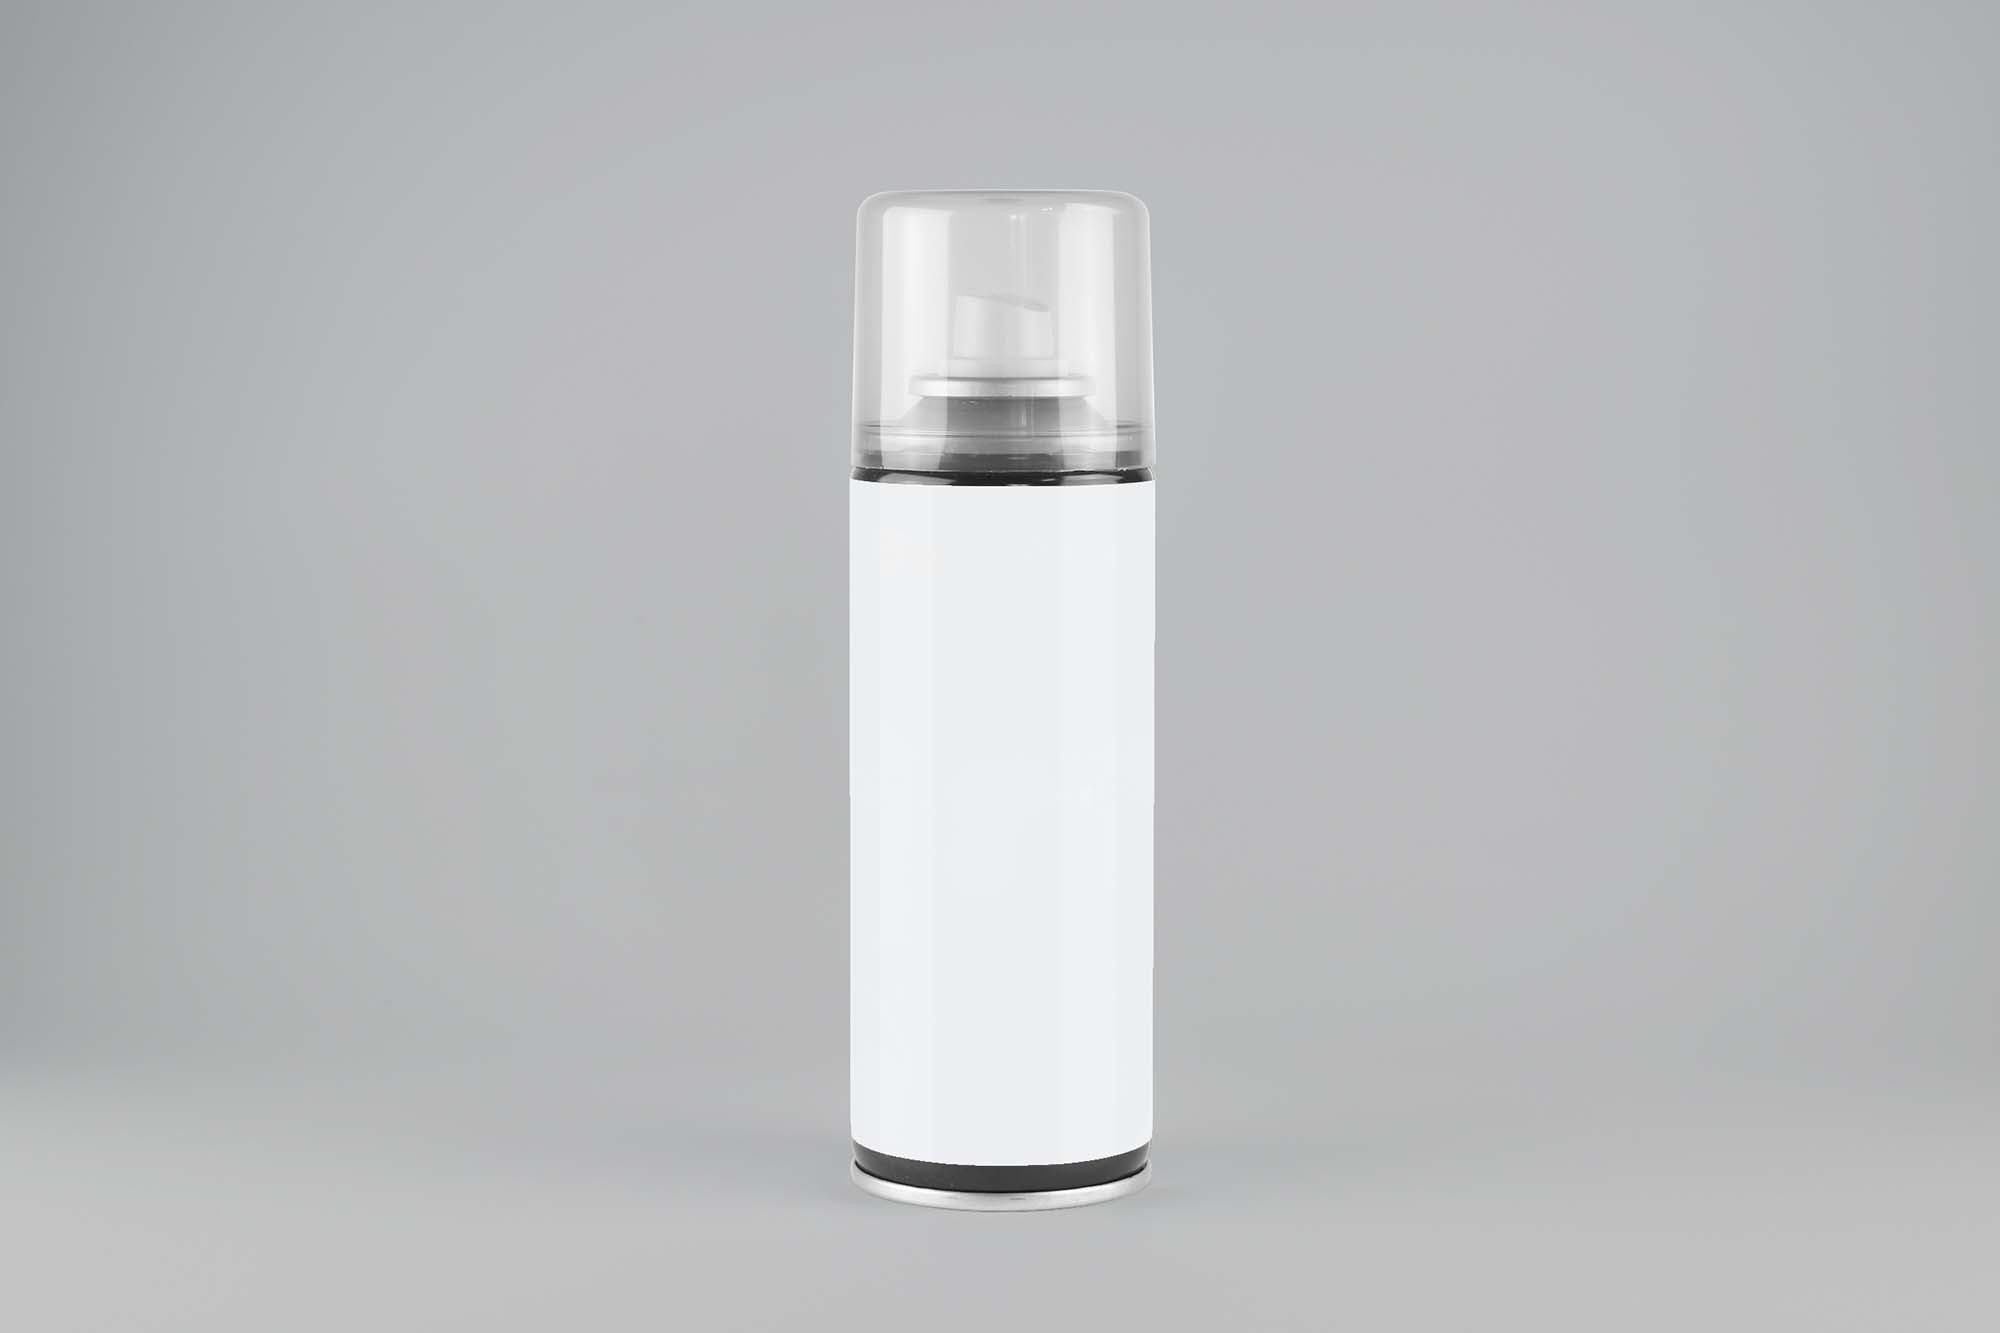 Front View Spray Bottle Mockup 2